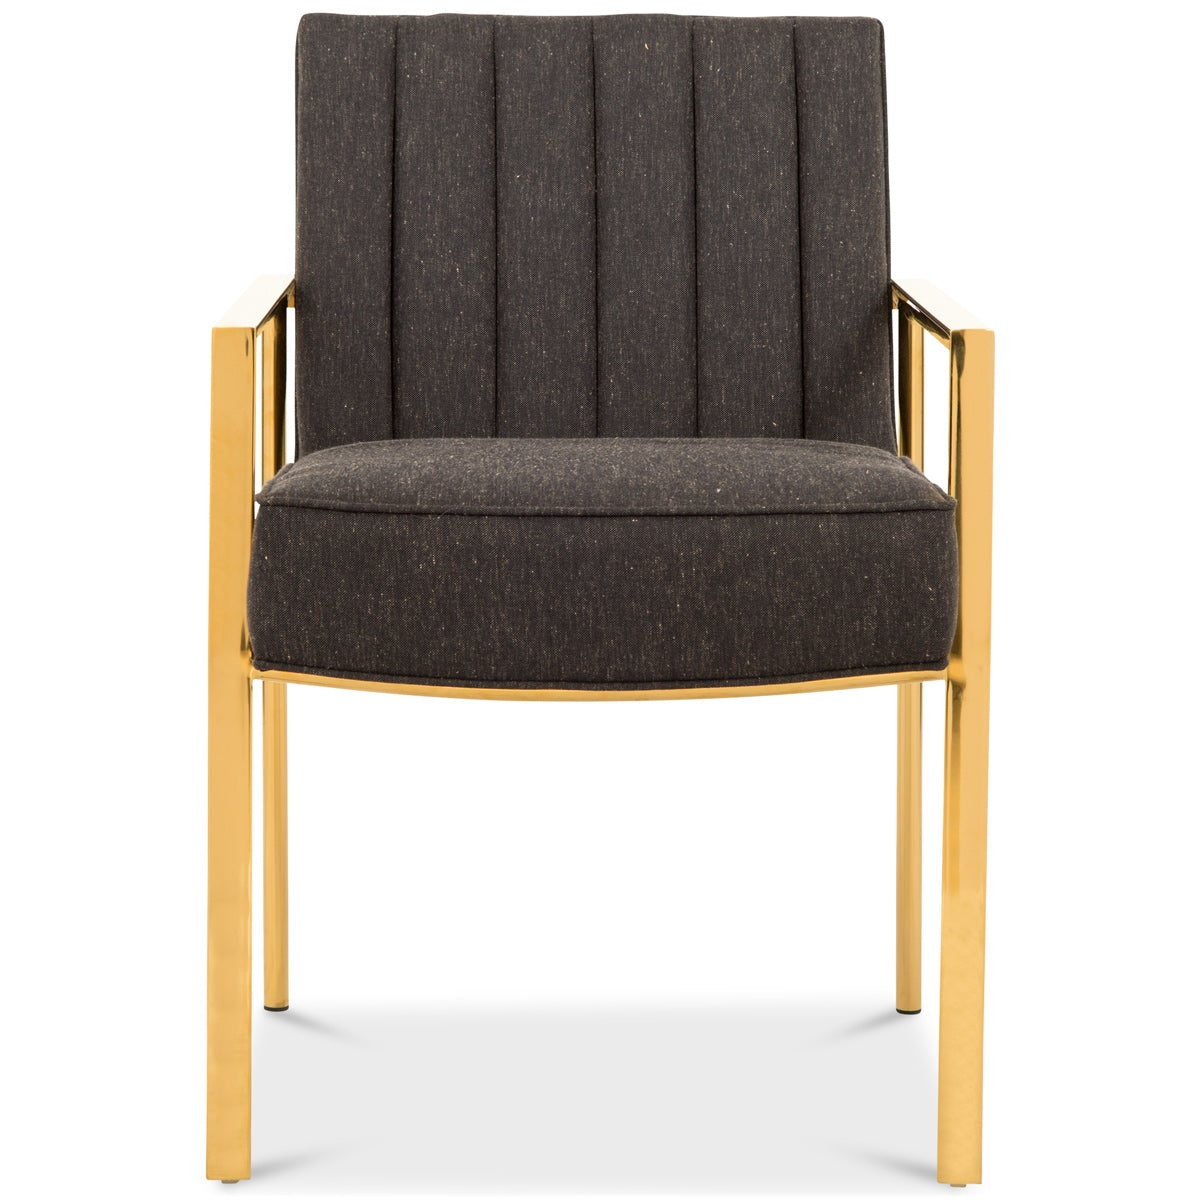 Argentina Dining Chair in Linen - ModShop1.com